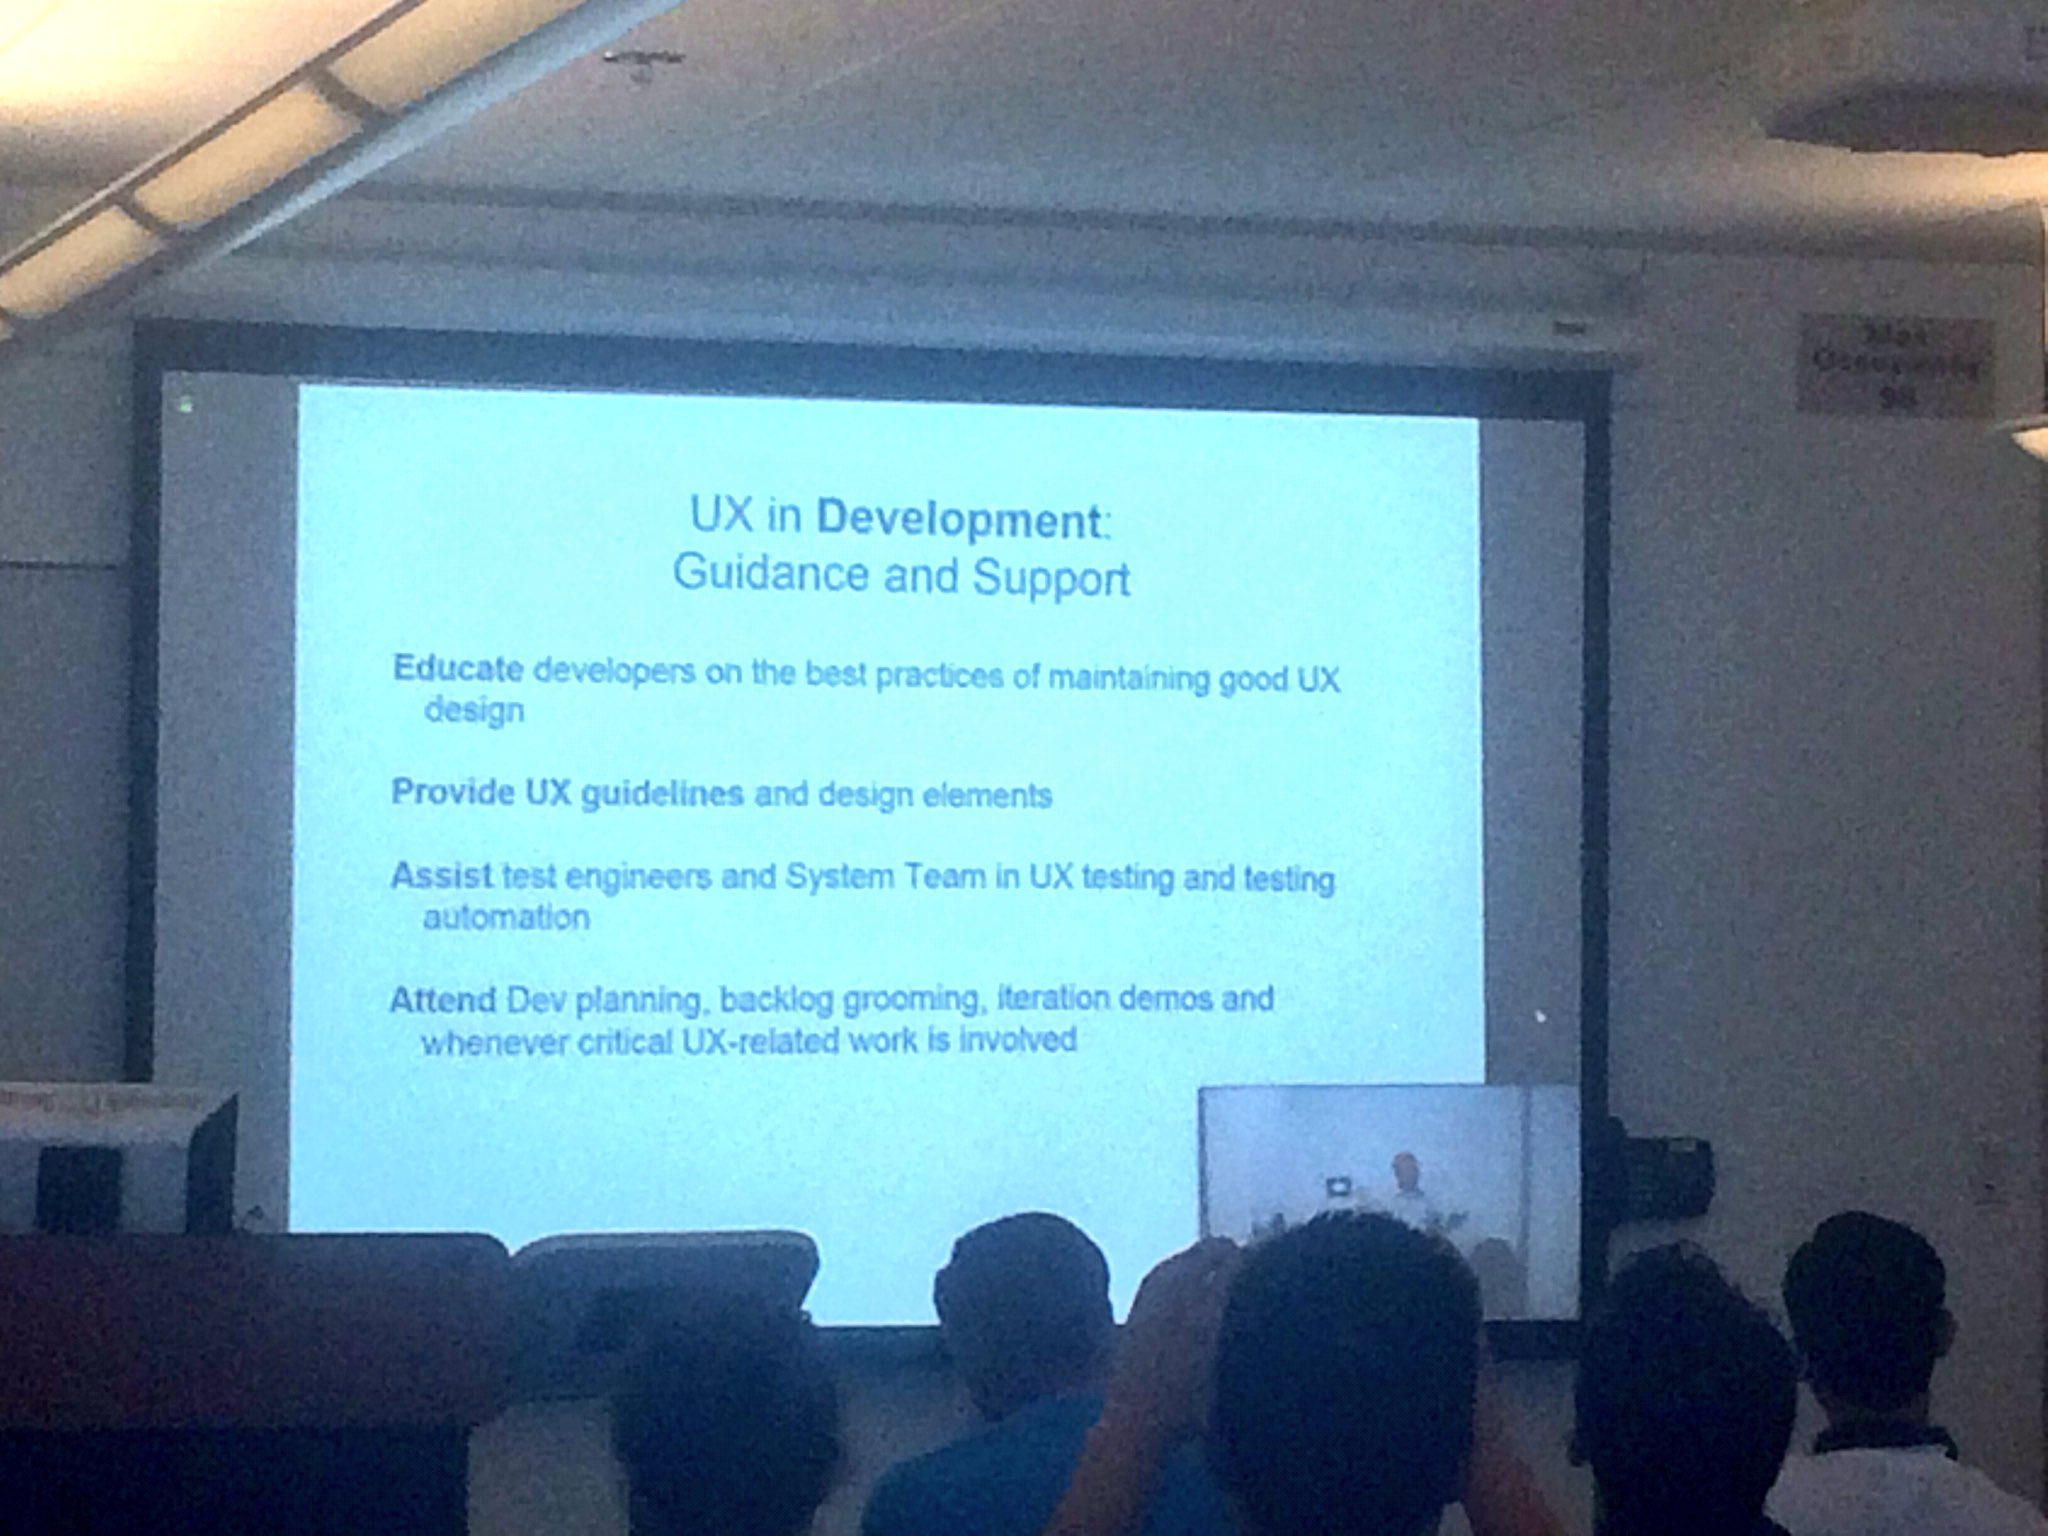 Where UX sits in development - provide guidance and support! @Sean_Van_Tyne #SoCalUXCamp https://t.co/4yOsPSOSGo